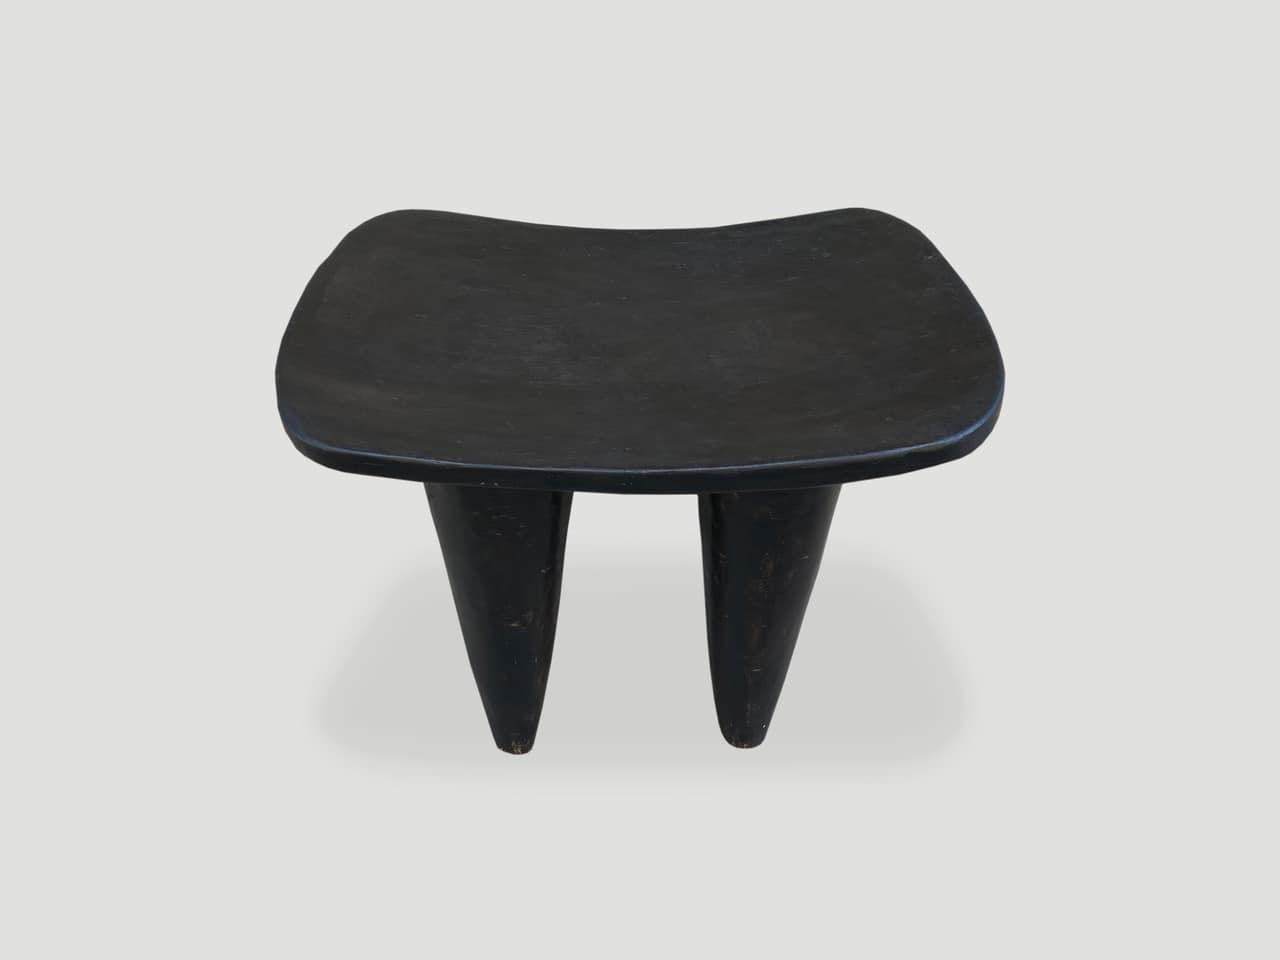 mahogany wood African side table stool or bench